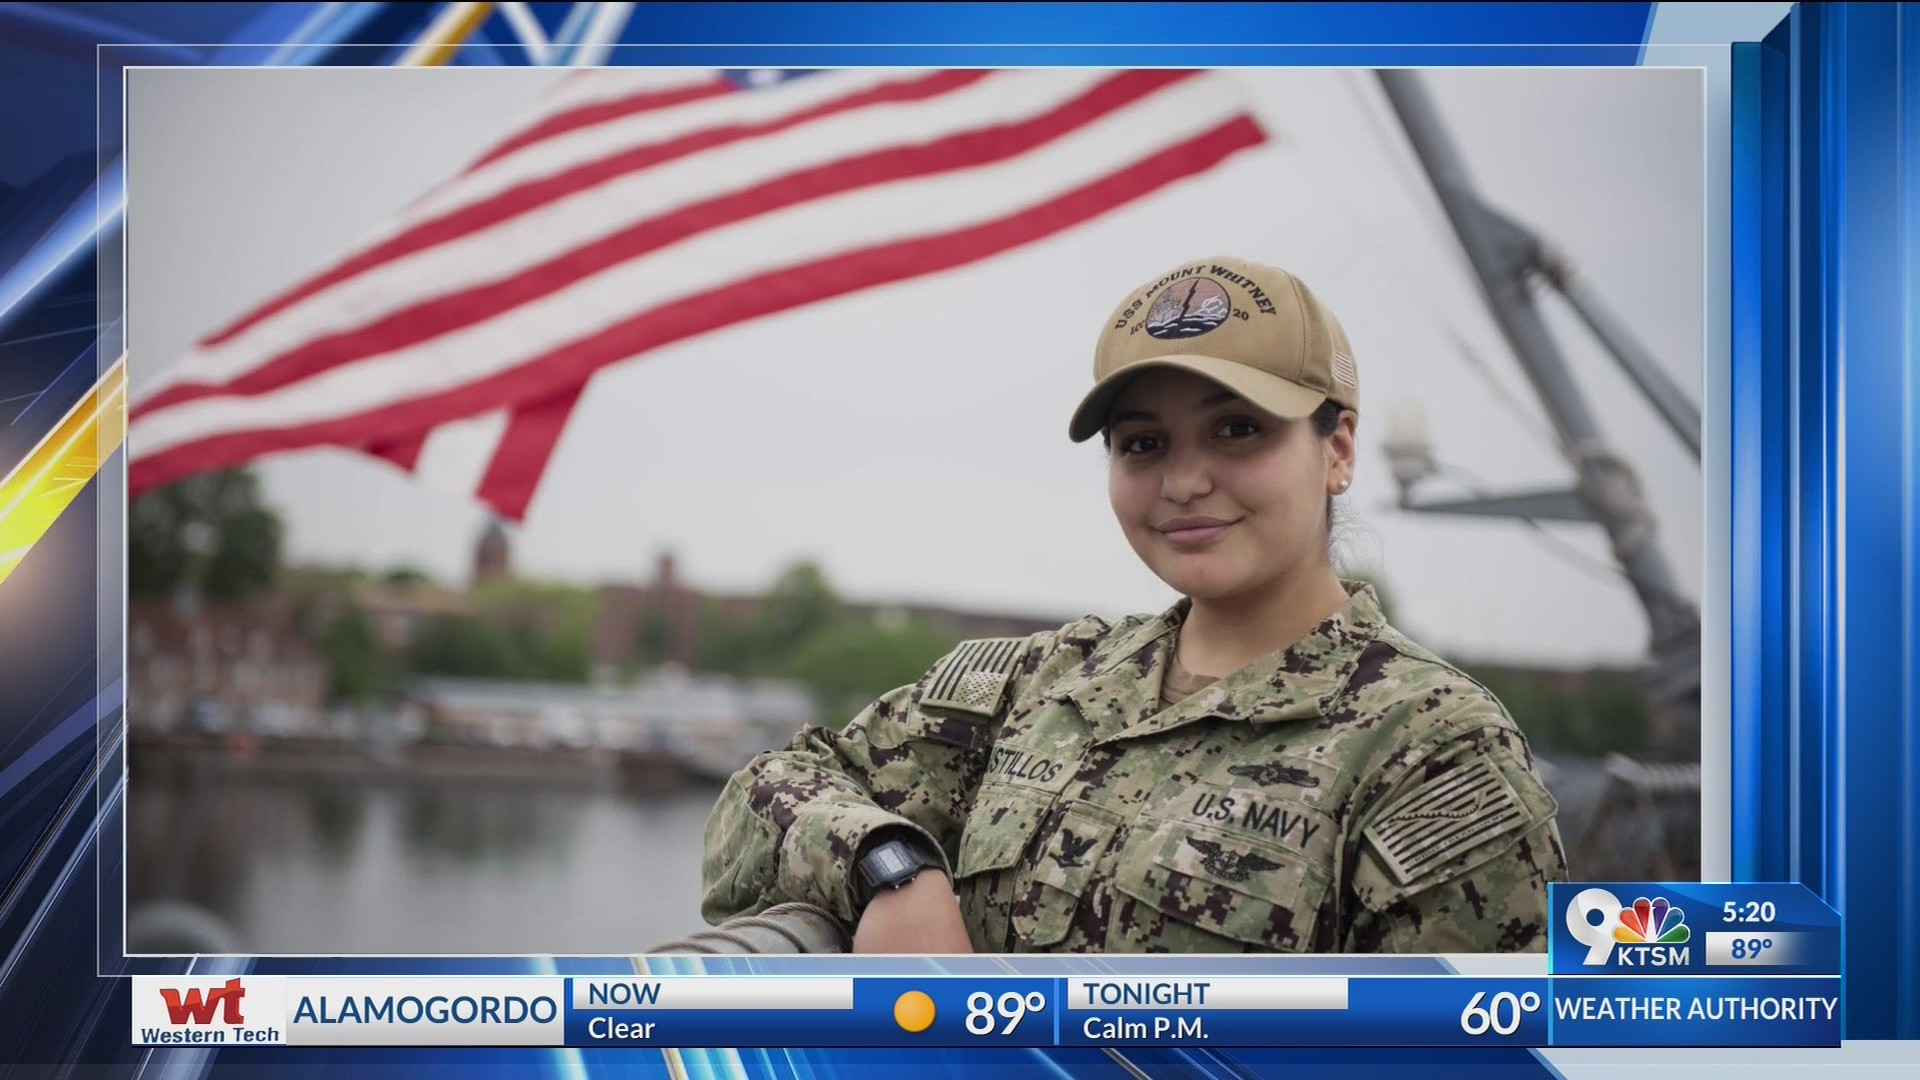 El Paso's diversity prepared petty officer for the Navy, world